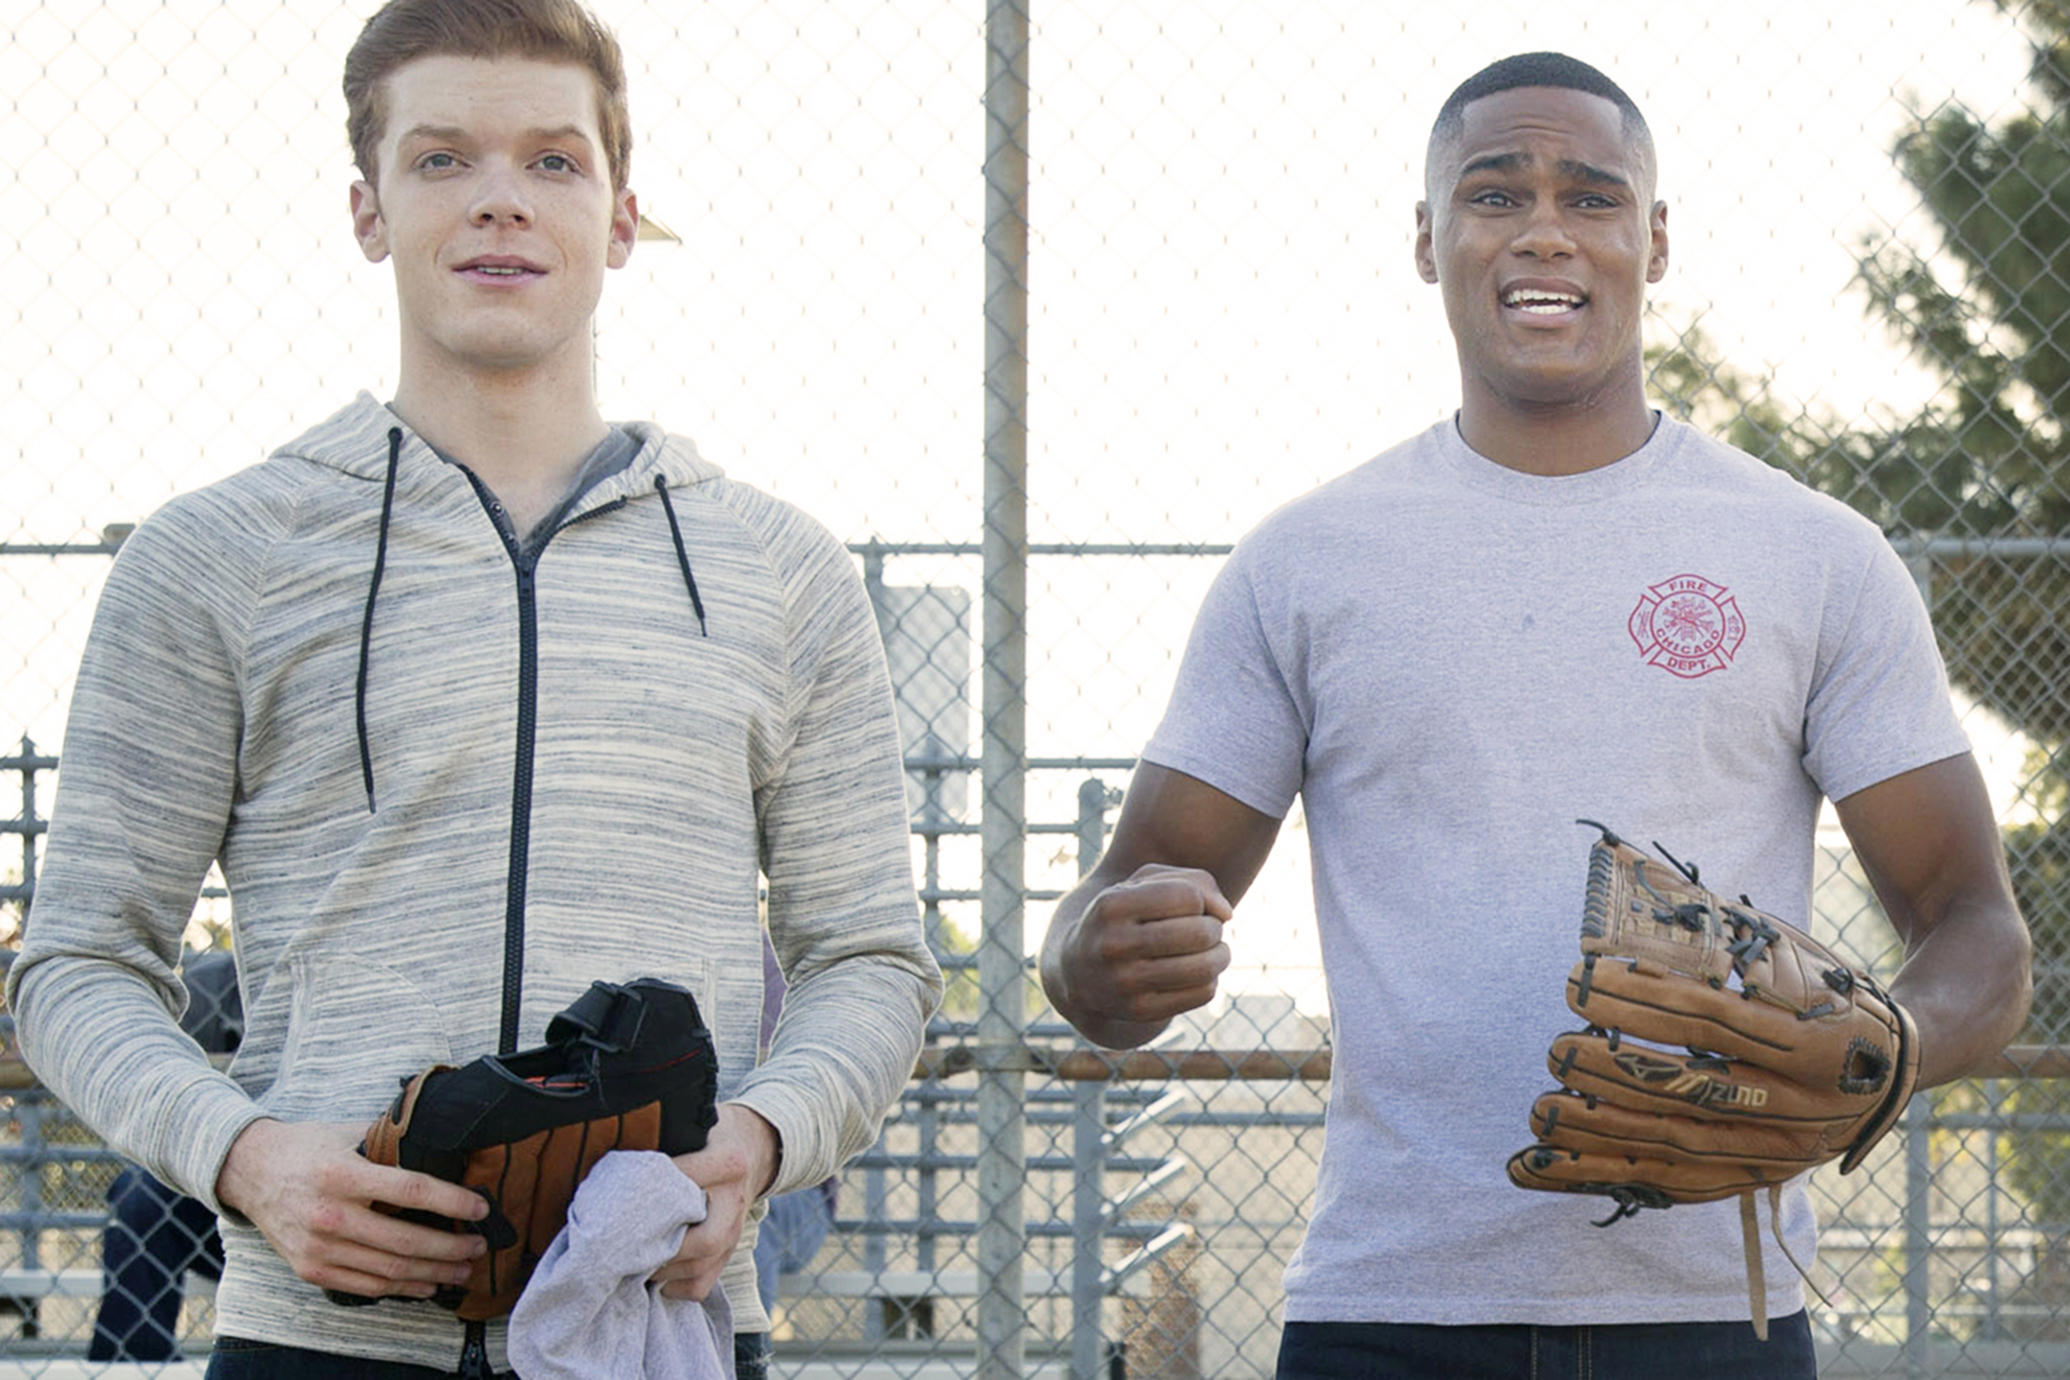 Cameron Monaghan as Ian Gallagher in Shameless (Season 6, episode 5) - Photo: Patrick Wymore/SHOWTIME - Photo ID: shameless_605_0022